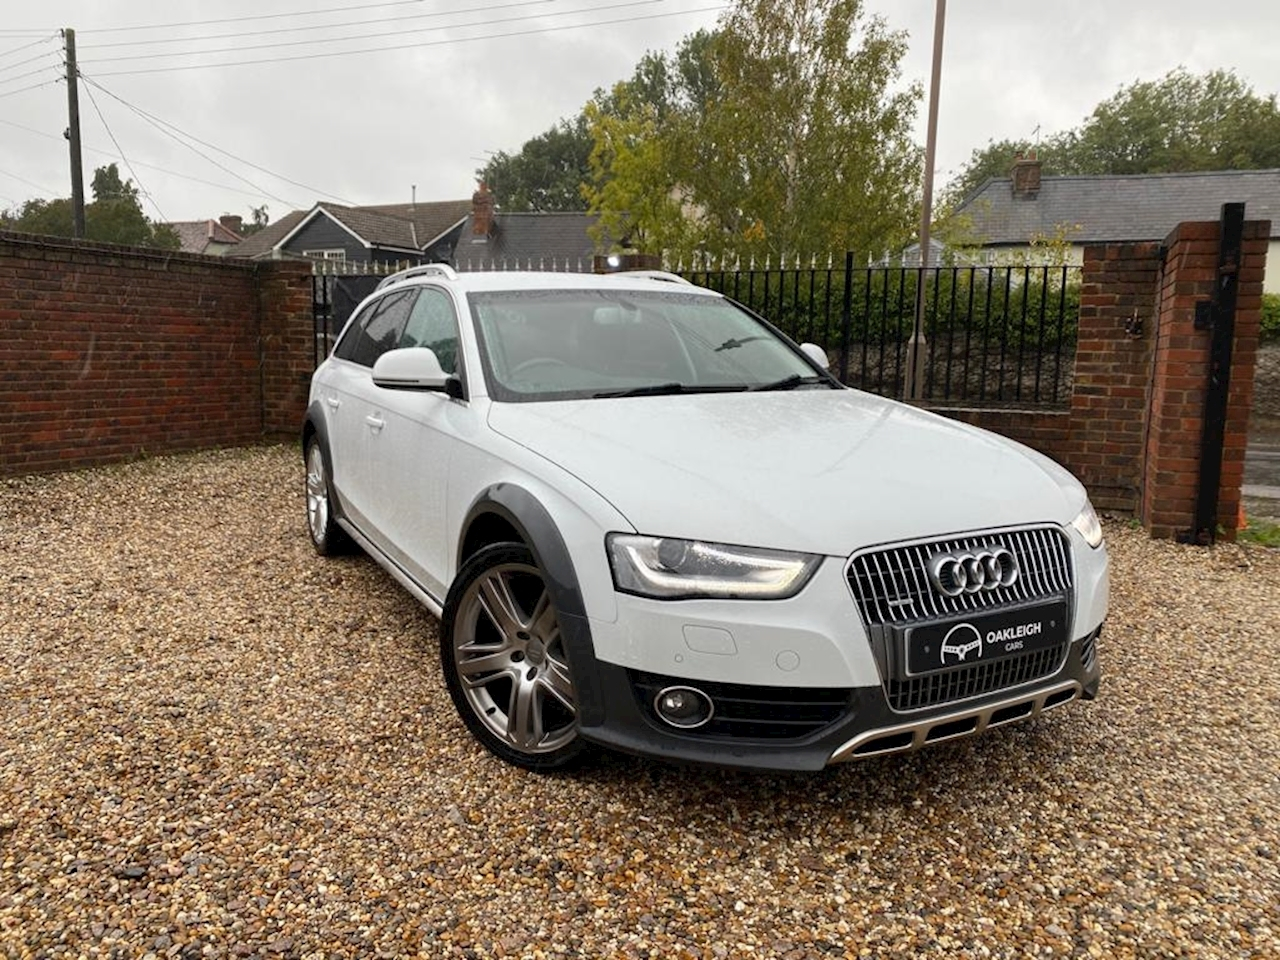 Audi A4 Allroad Sport 2.0 5dr Allroad S Tronic Diesel